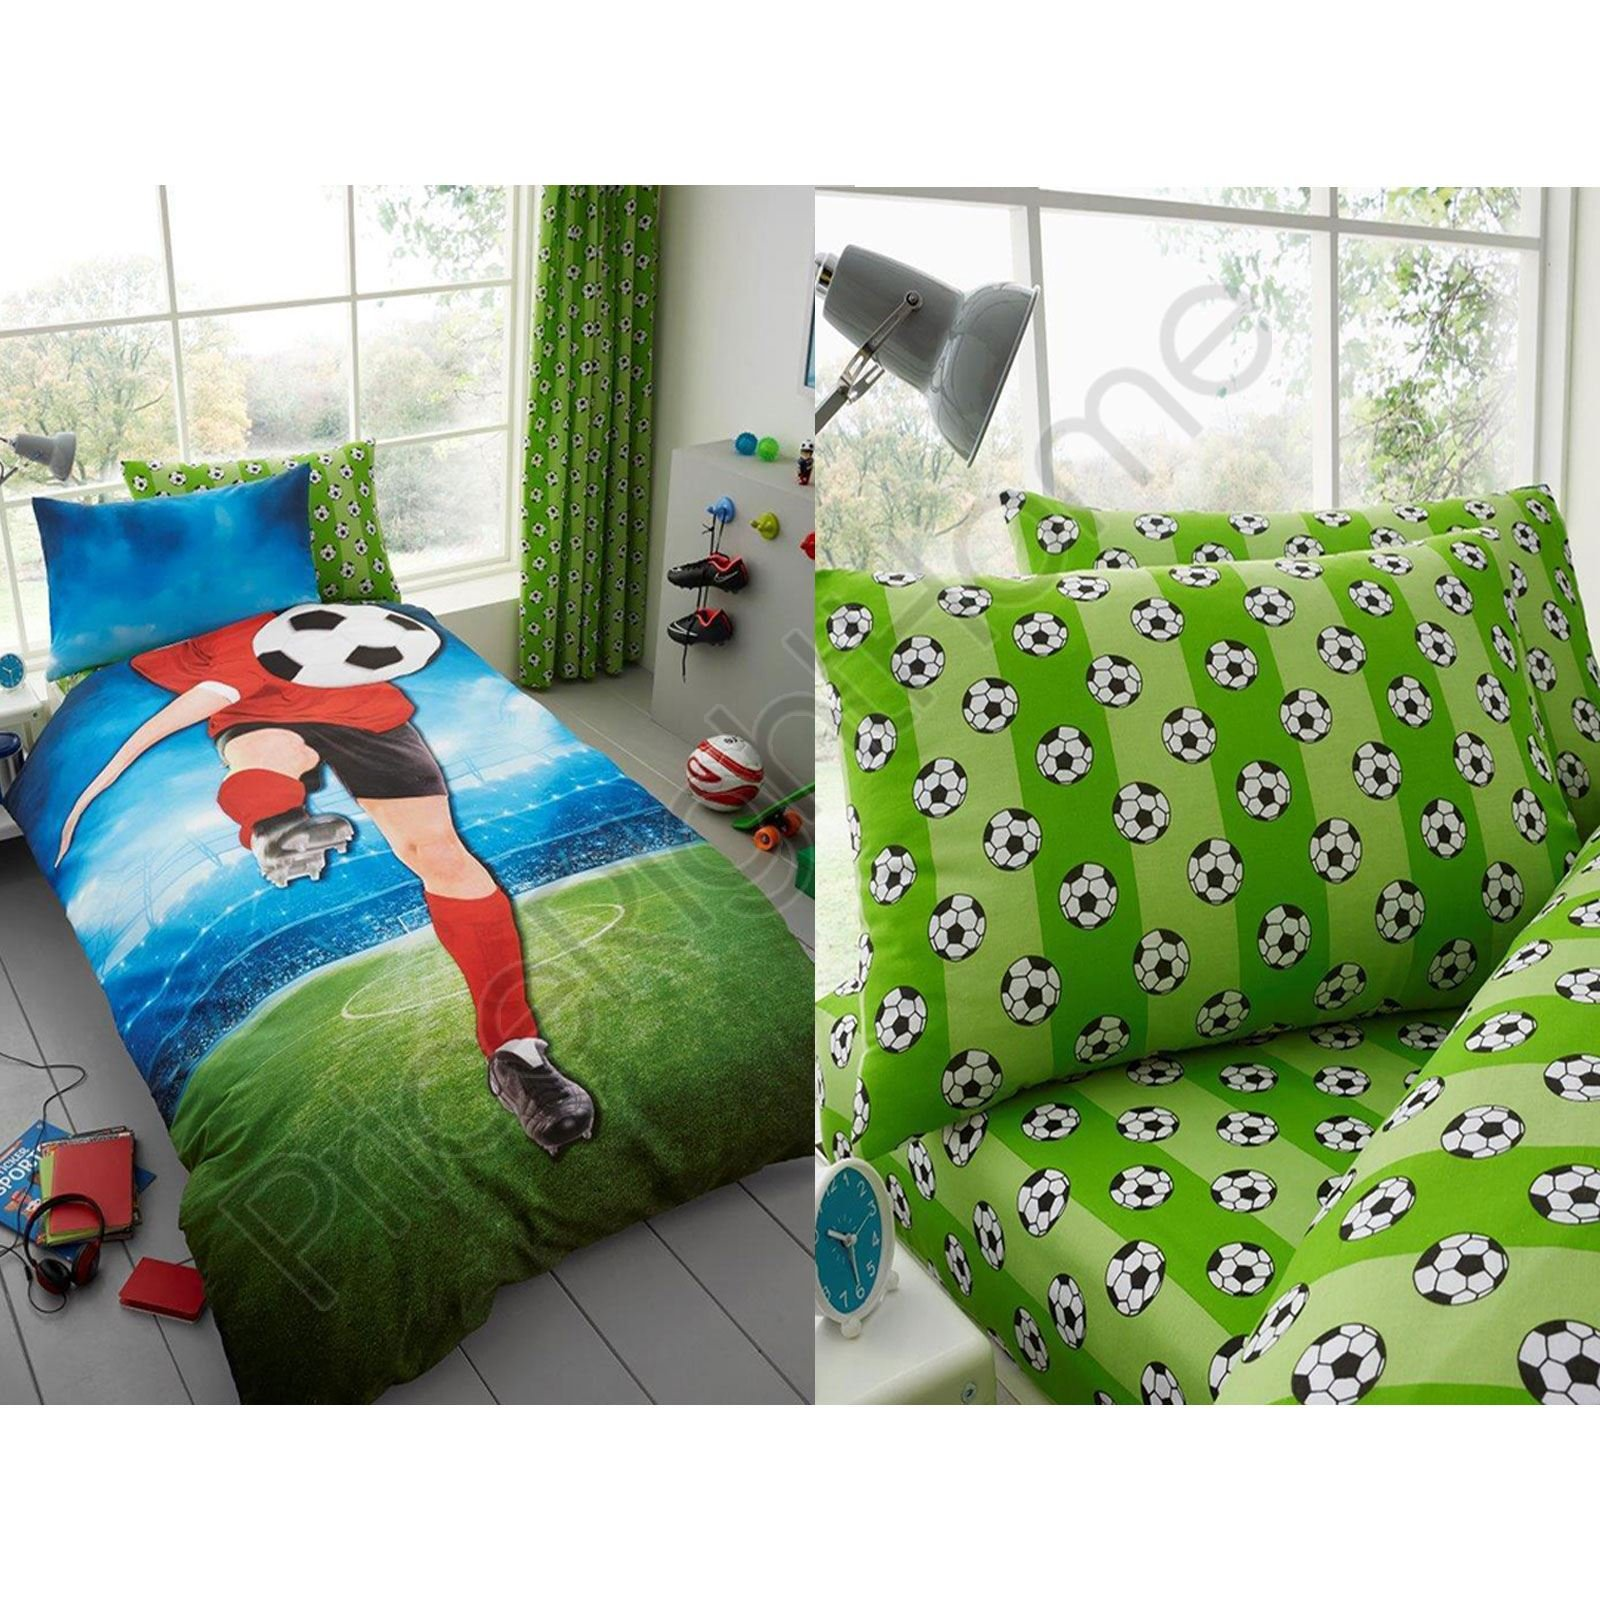 Soccer Footballer Selfie UK Single / US Twin Duvet Cover and Pillowcase Plus Matching Single Fitted Sheet